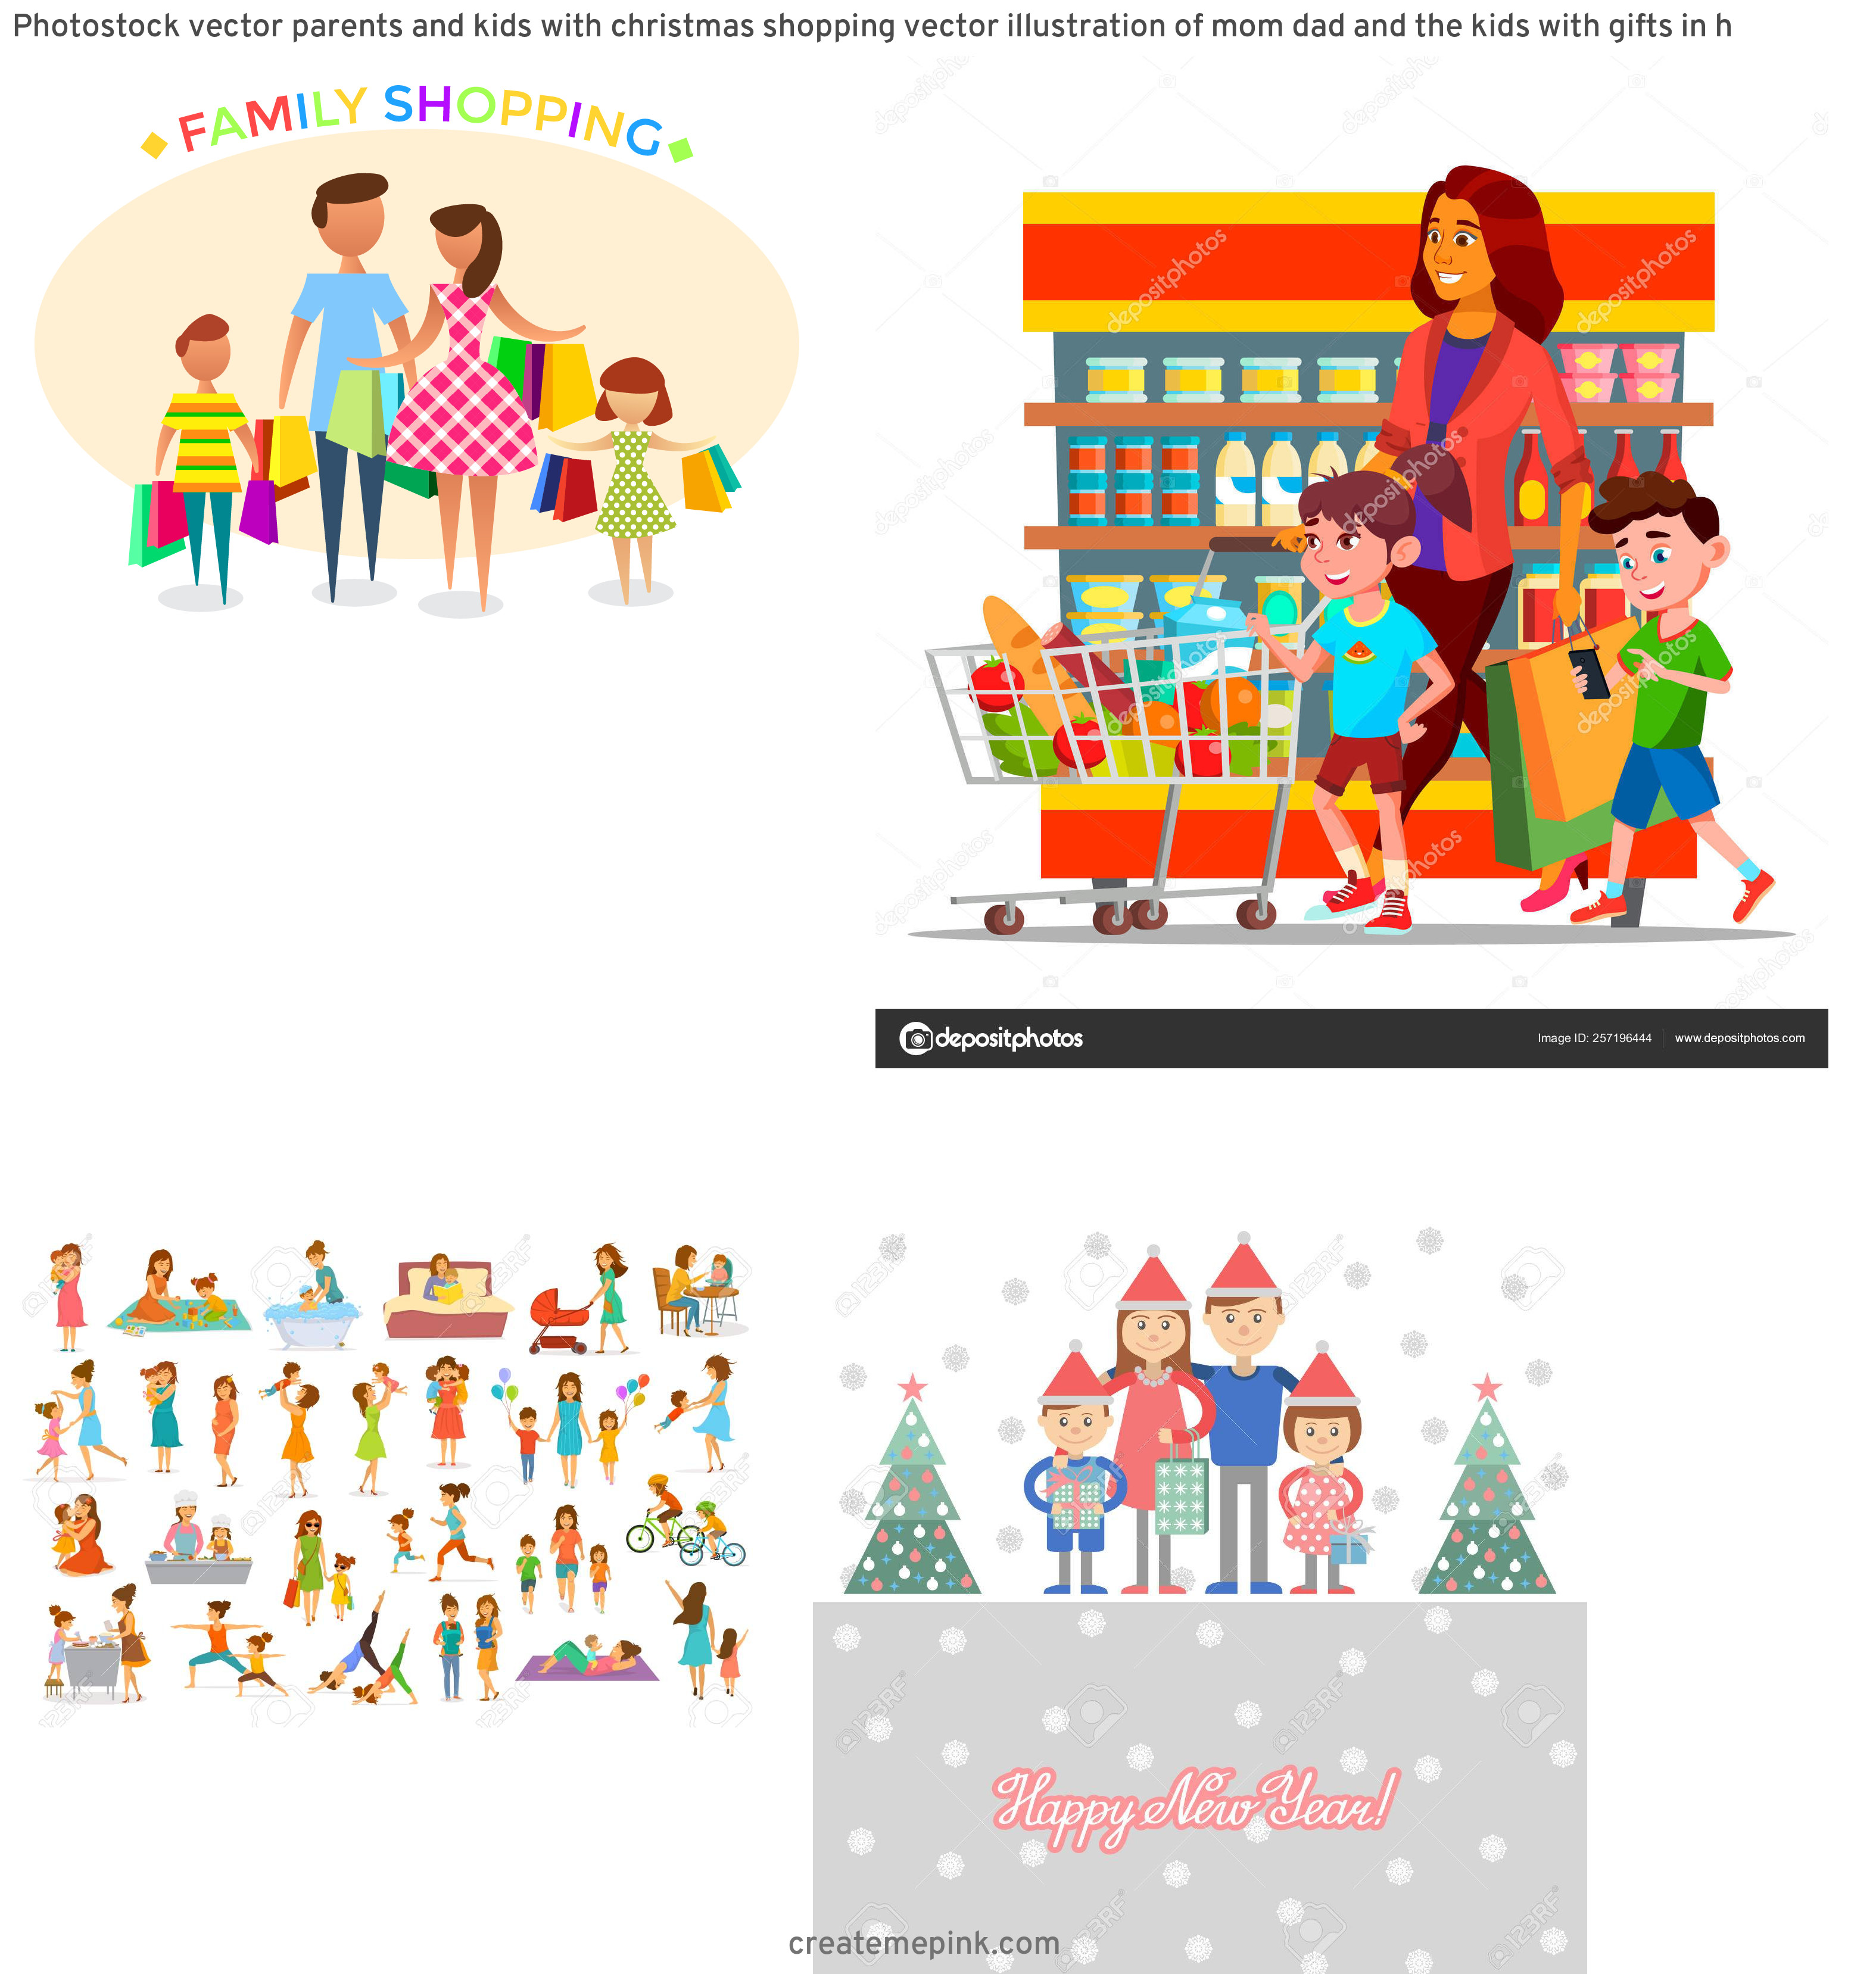 Shopping Vector Of Mom: Photostock Vector Parents And Kids With Christmas Shopping Vector Illustration Of Mom Dad And The Kids With Gifts In H